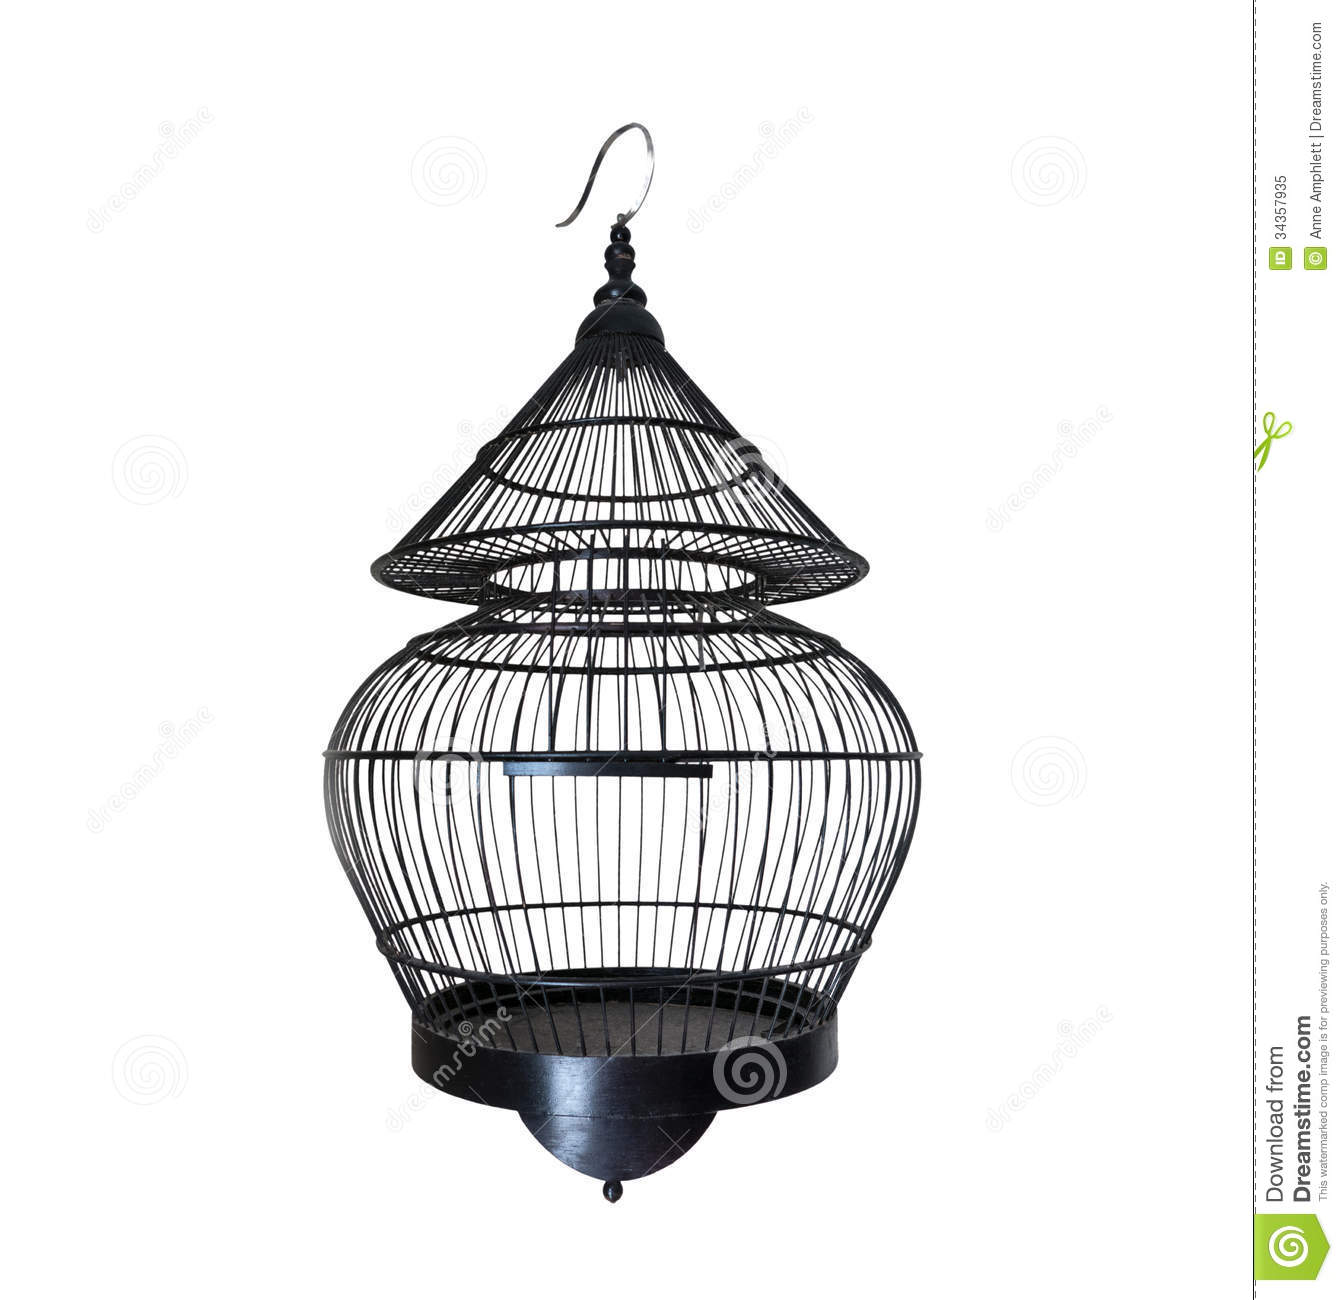 Old Black Bird Cage Royalty Free Stock Photo